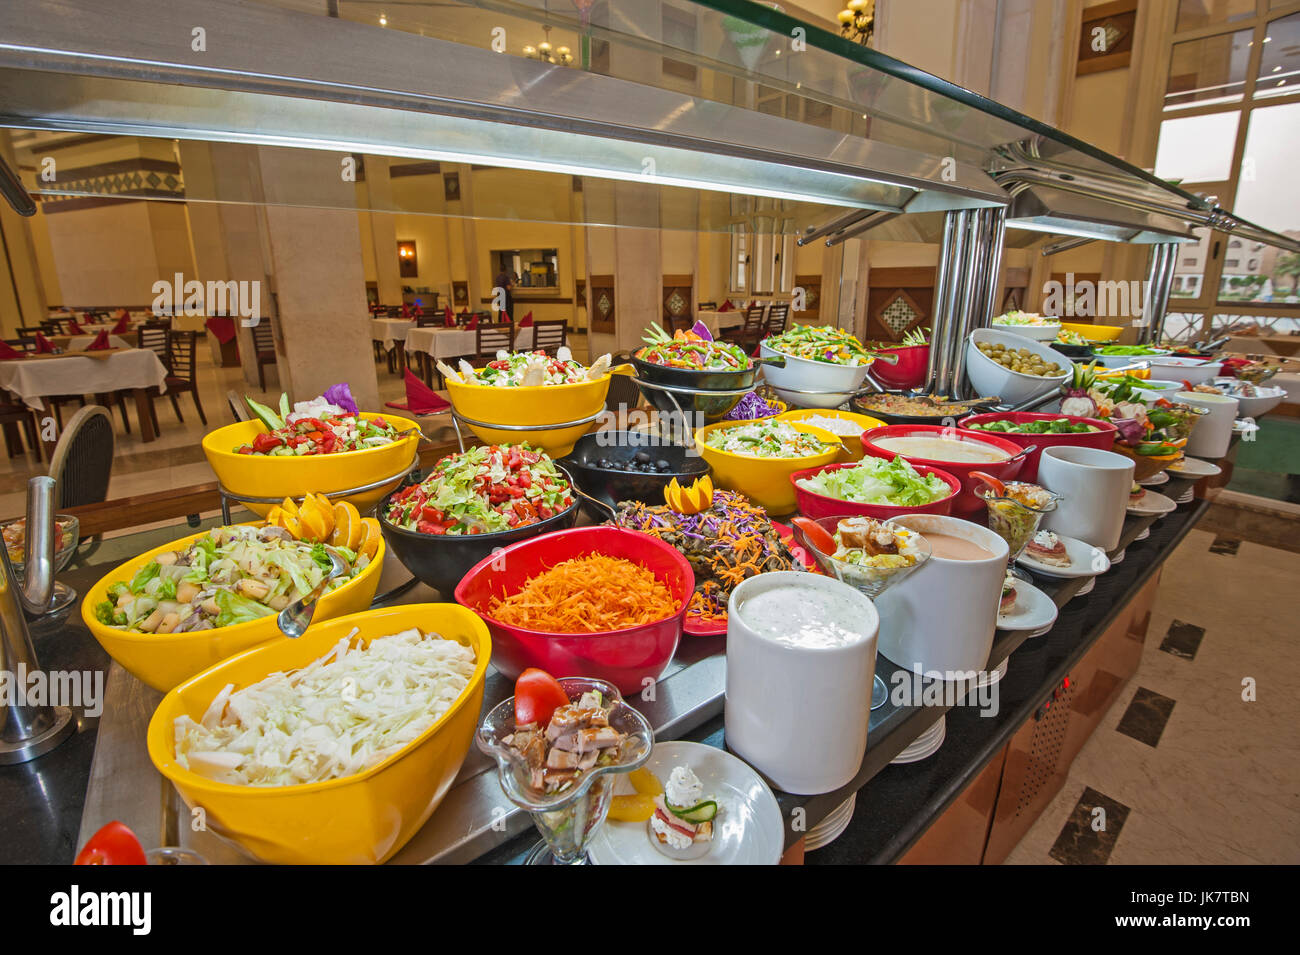 Selection Display Of Salads At A Luxury Hotel Restaurant Buffet Bar Stock Photo Alamy